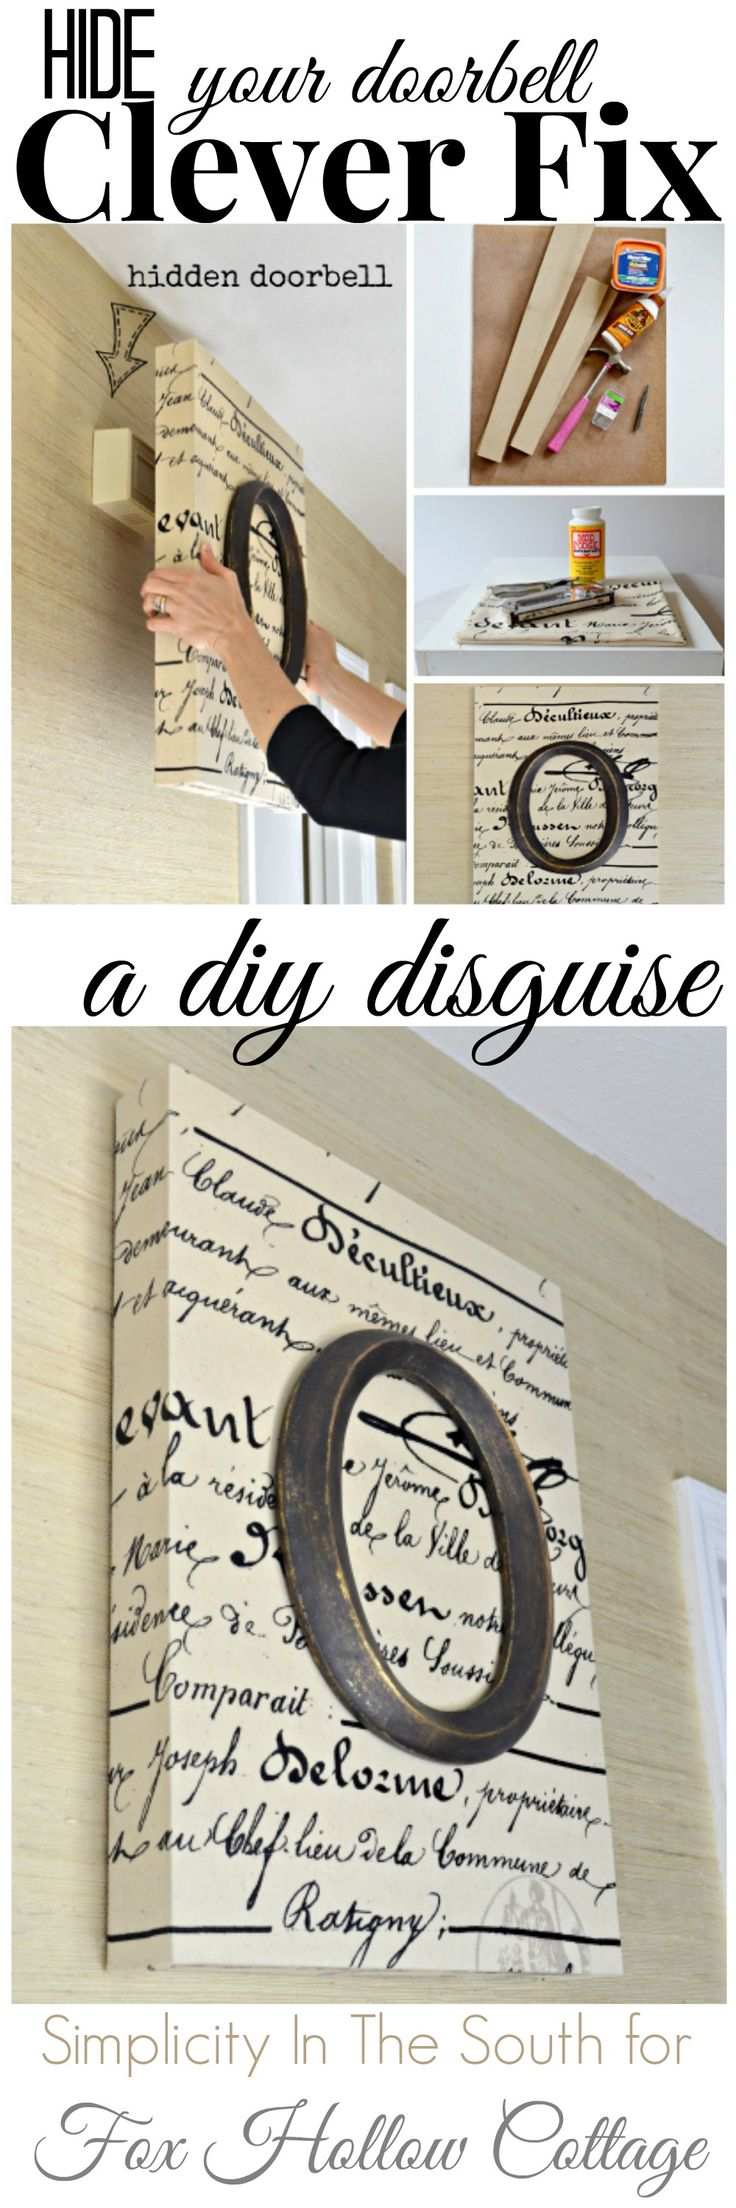 Diy Monogram Art - Doorbell Disguise Fox Hollow Cottage